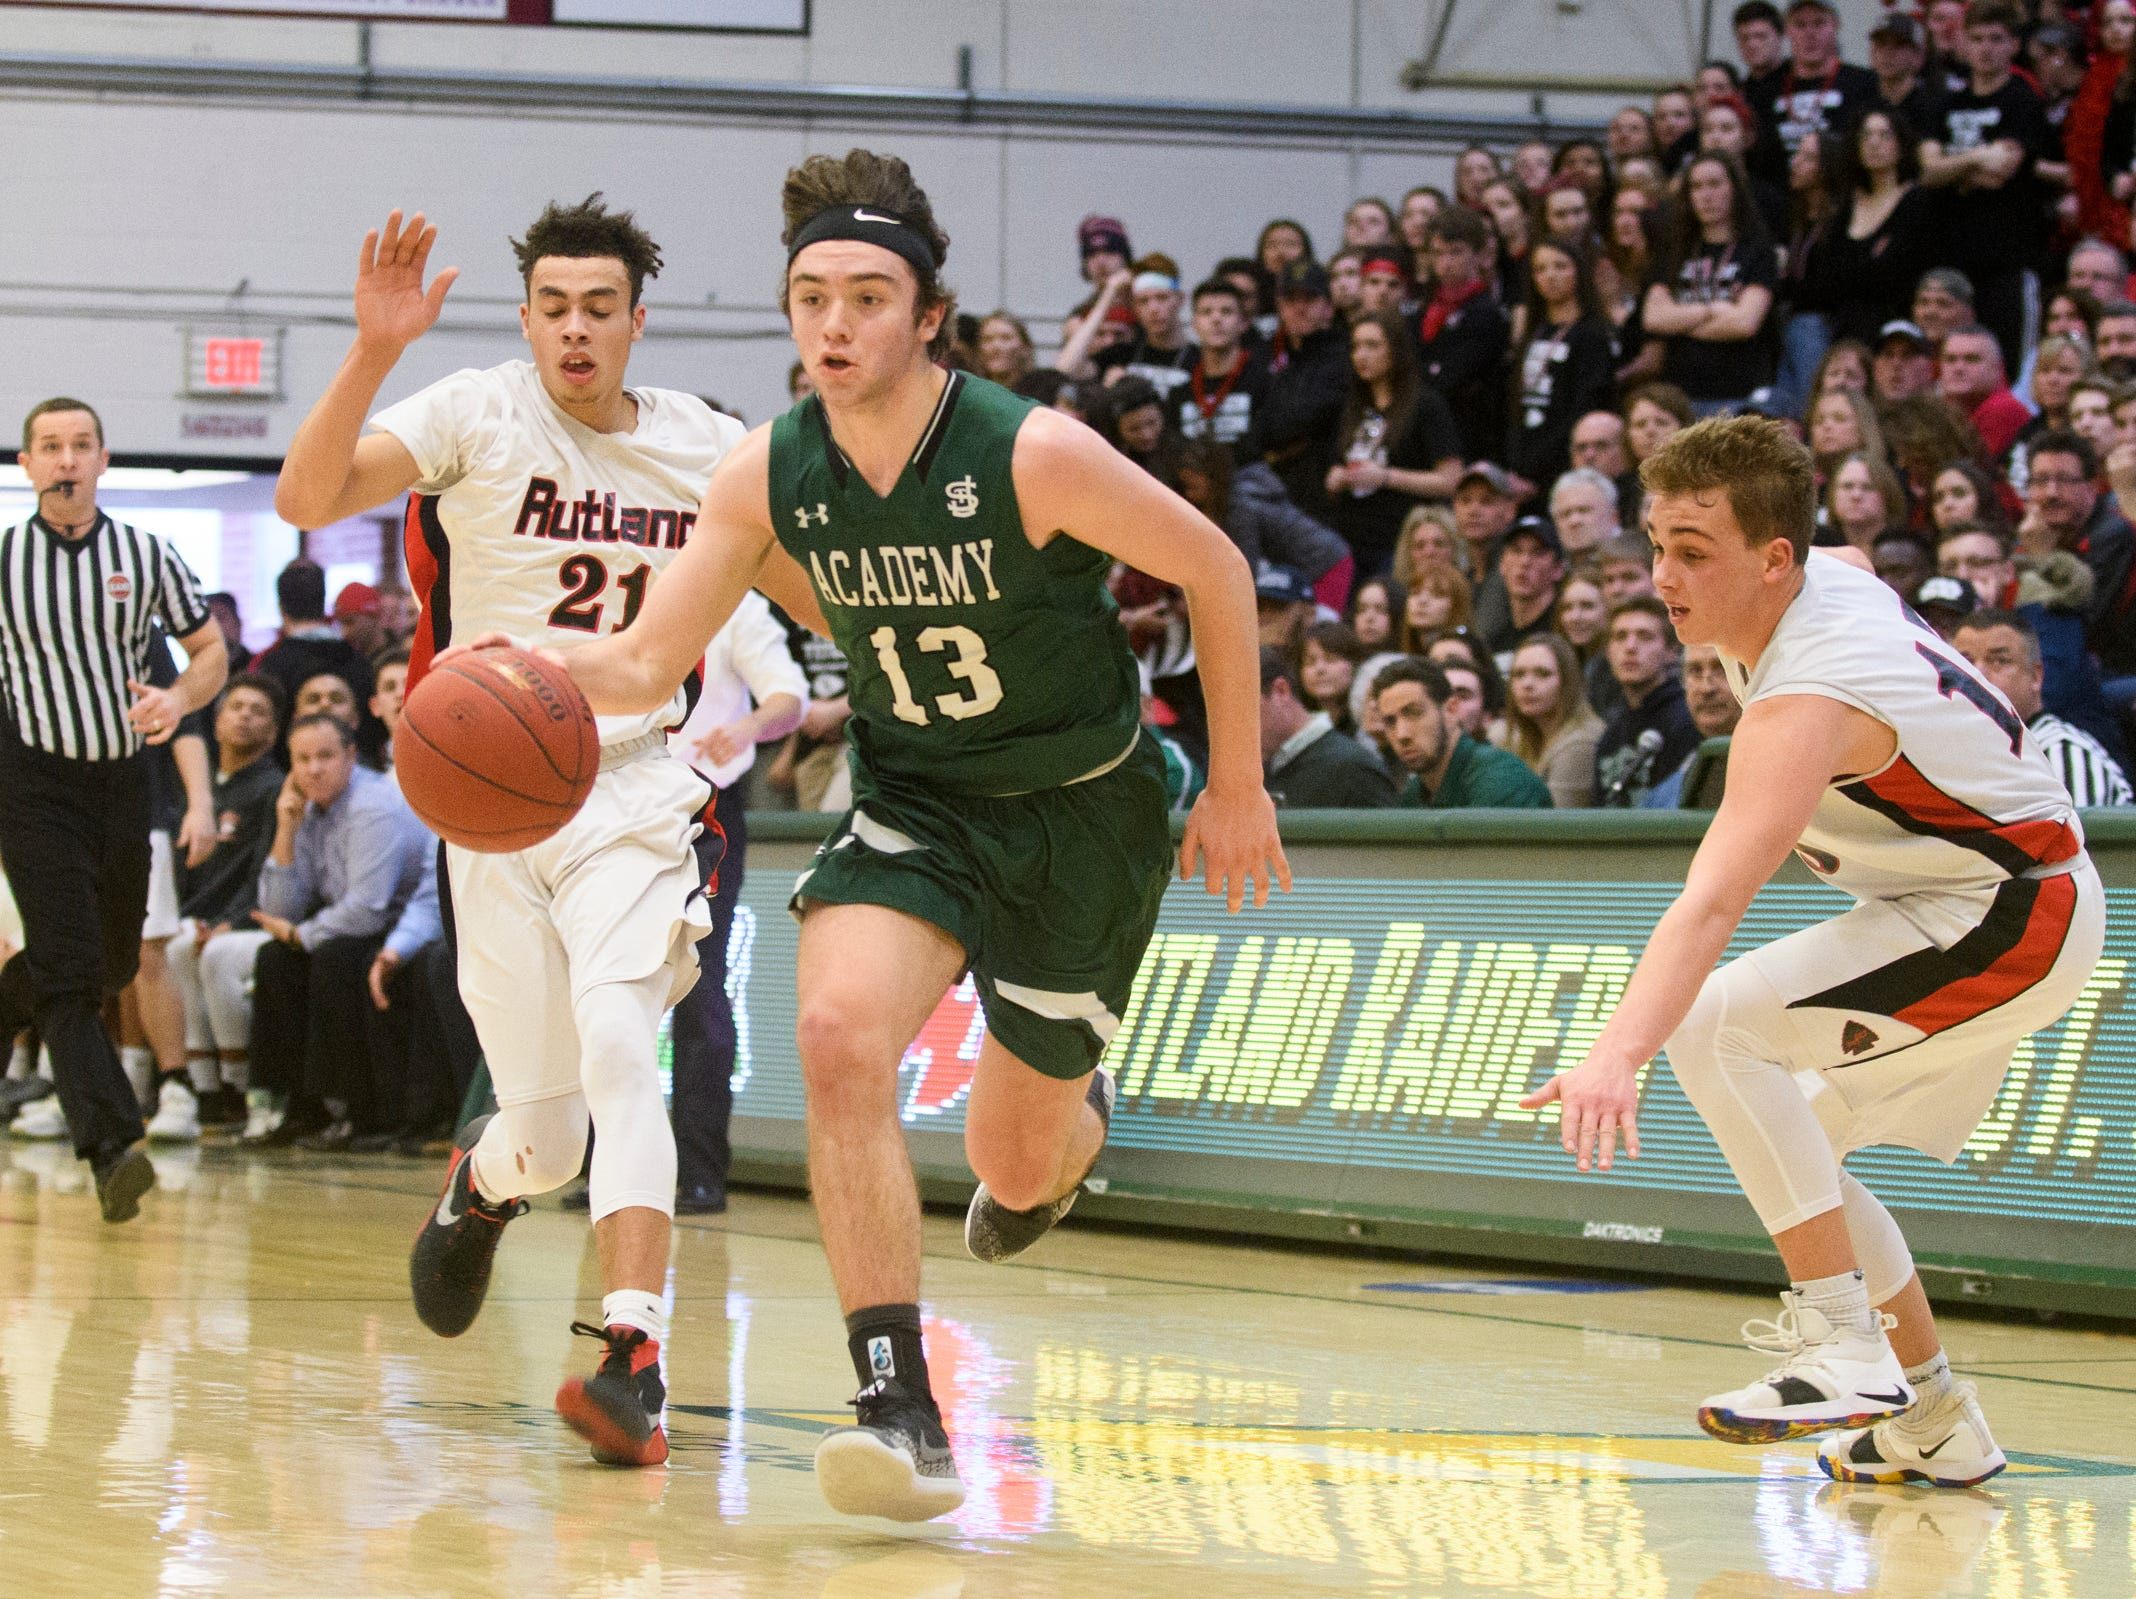 St. Johnsbury's Alex Carlisle (13) drives to the hoop during the DI boys basketball championship game between the St. Johnsbury Hilltoppers and the Rutland Raiders at Patrick Gym on Sunday afternoon March 17, 2019 in Burlington, Vermont.